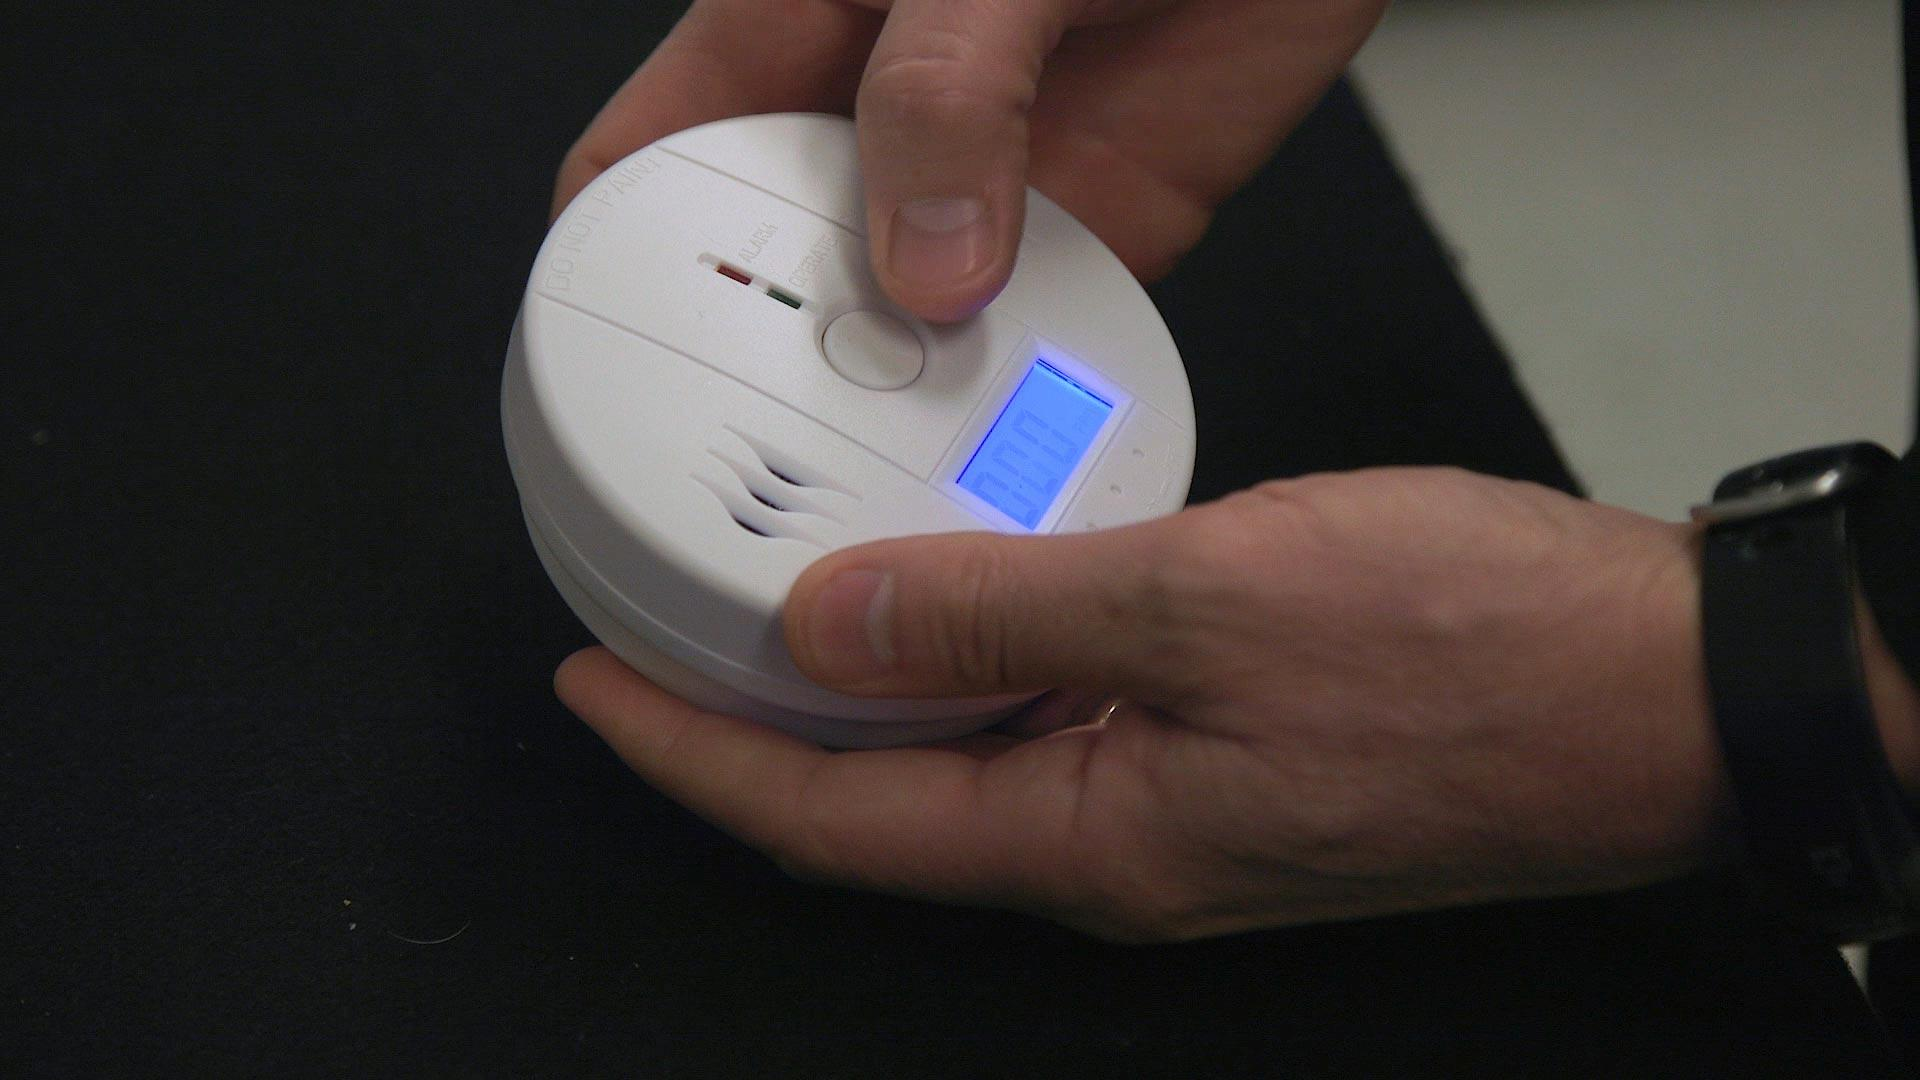 Baby cribs reviews consumer reports - Consumer Reports 3 Co Alarms Pose Safety Risk